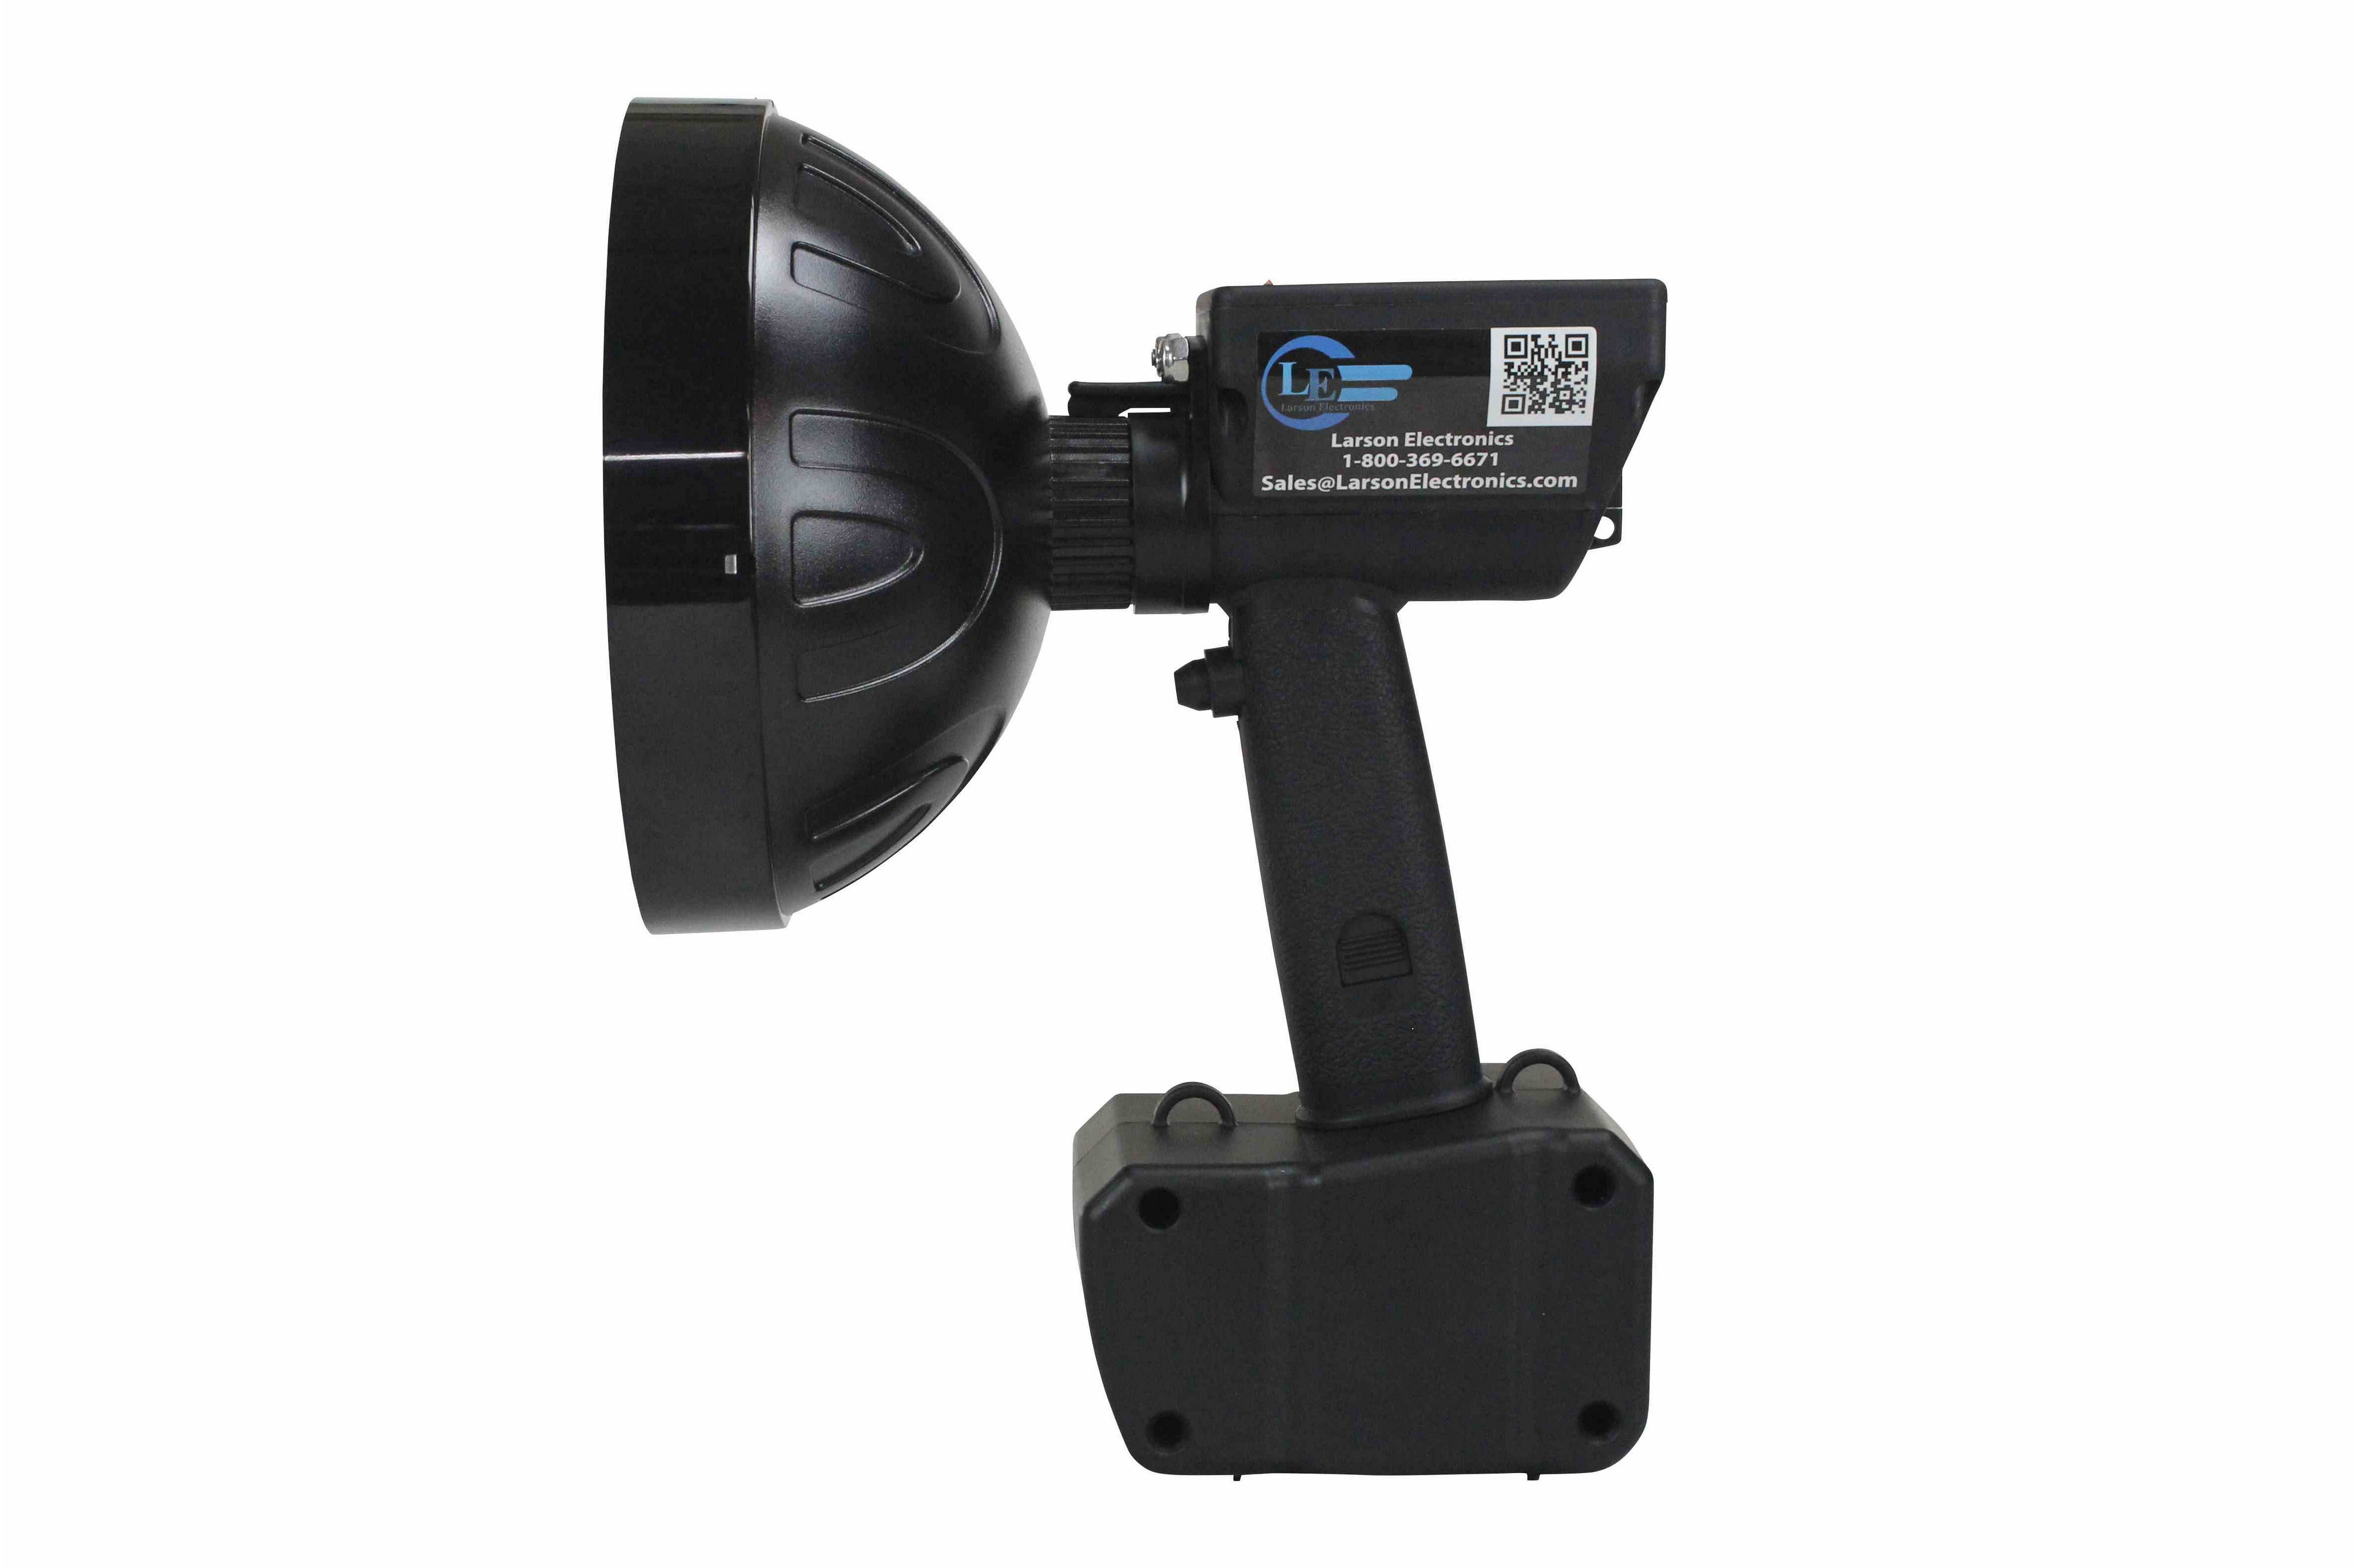 Larson Electronics 0909P4QNZUY 2006 Chevrolet Cobalt Coupe Post Mount Spotlight 100W Halogen 6 Inch -Black Driver Side with Install Kit